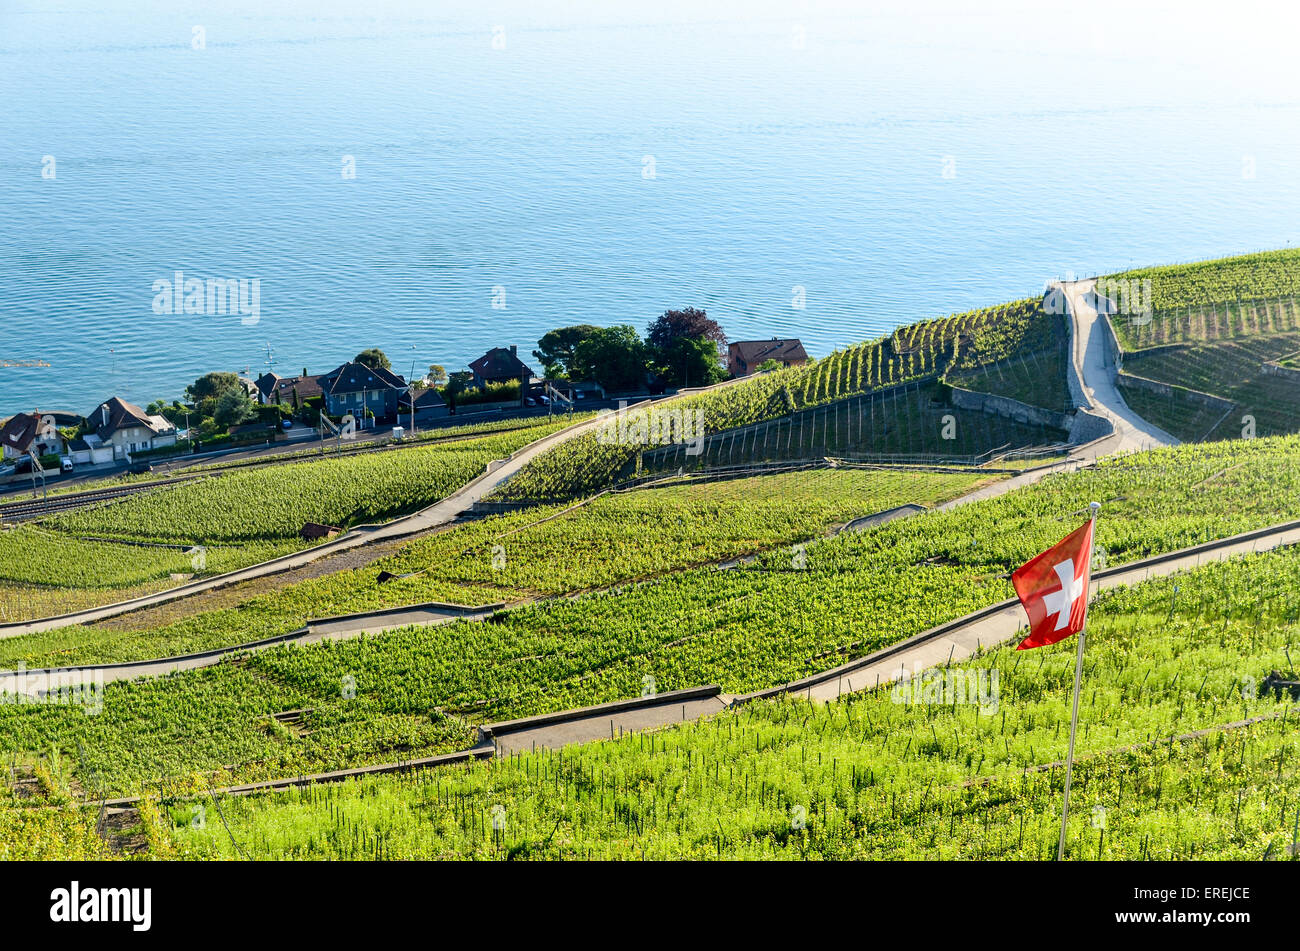 Swiss flag flying in the vineyards of the Lavaux in Switzerland, by Lake Geneva - Stock Image